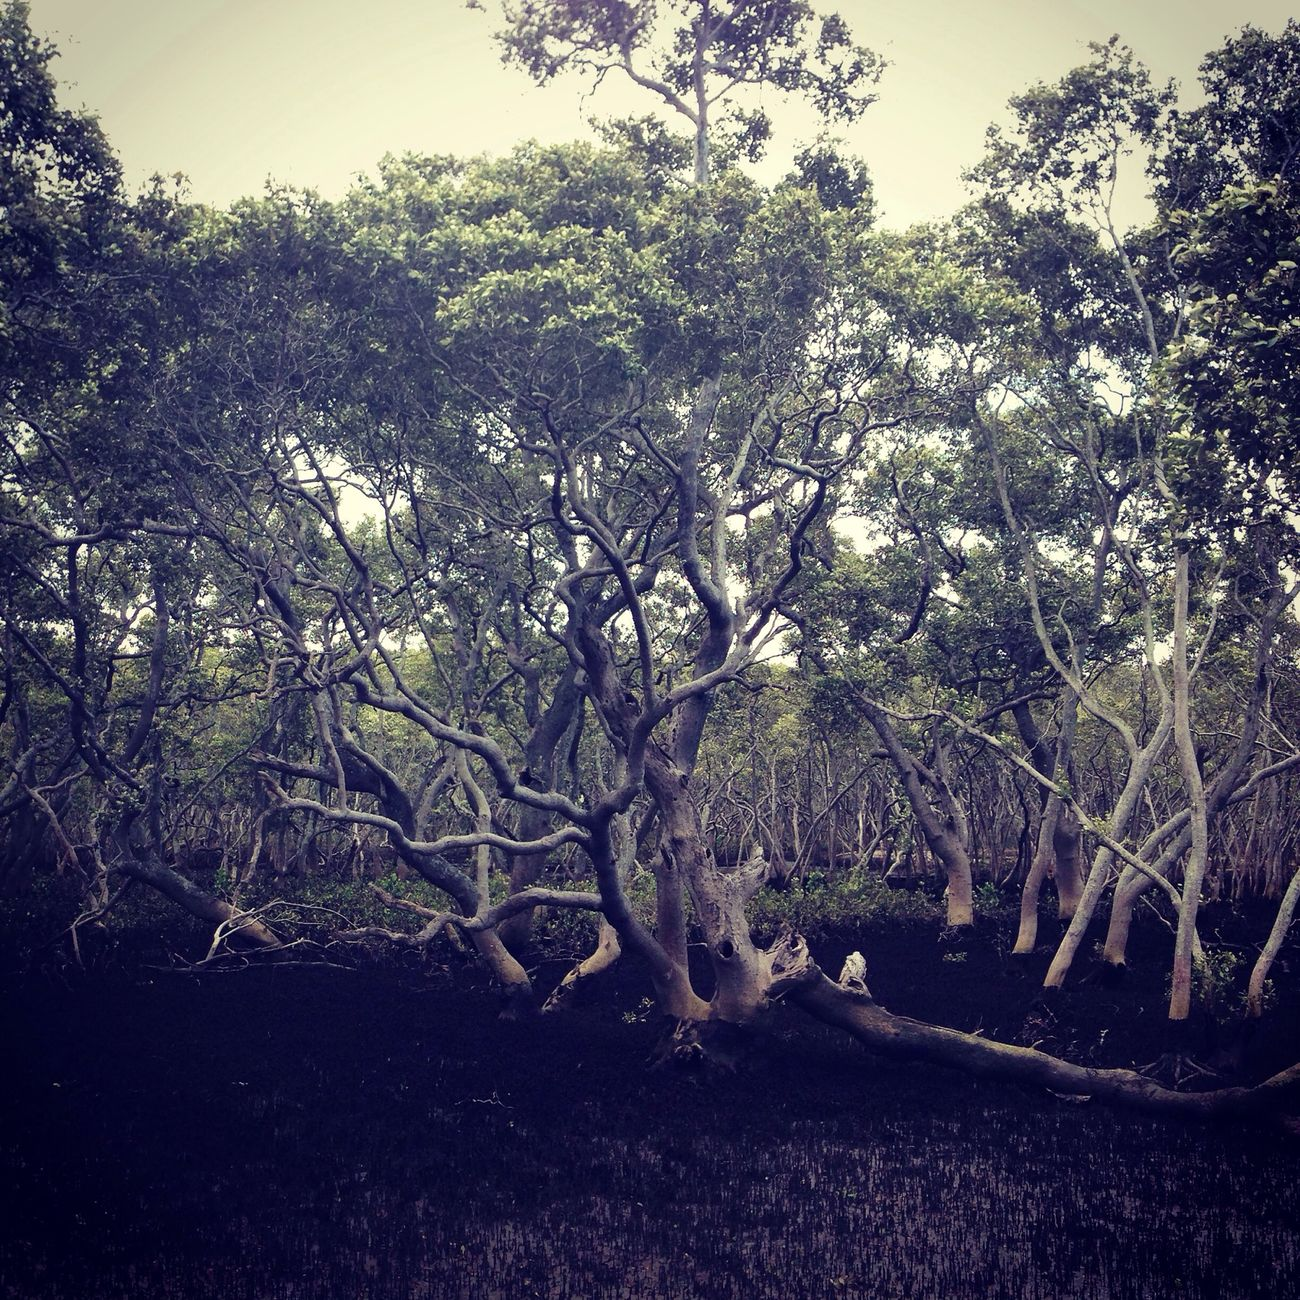 Wynnum Mangroves Mangroves Wynnum Wilddlife Trees